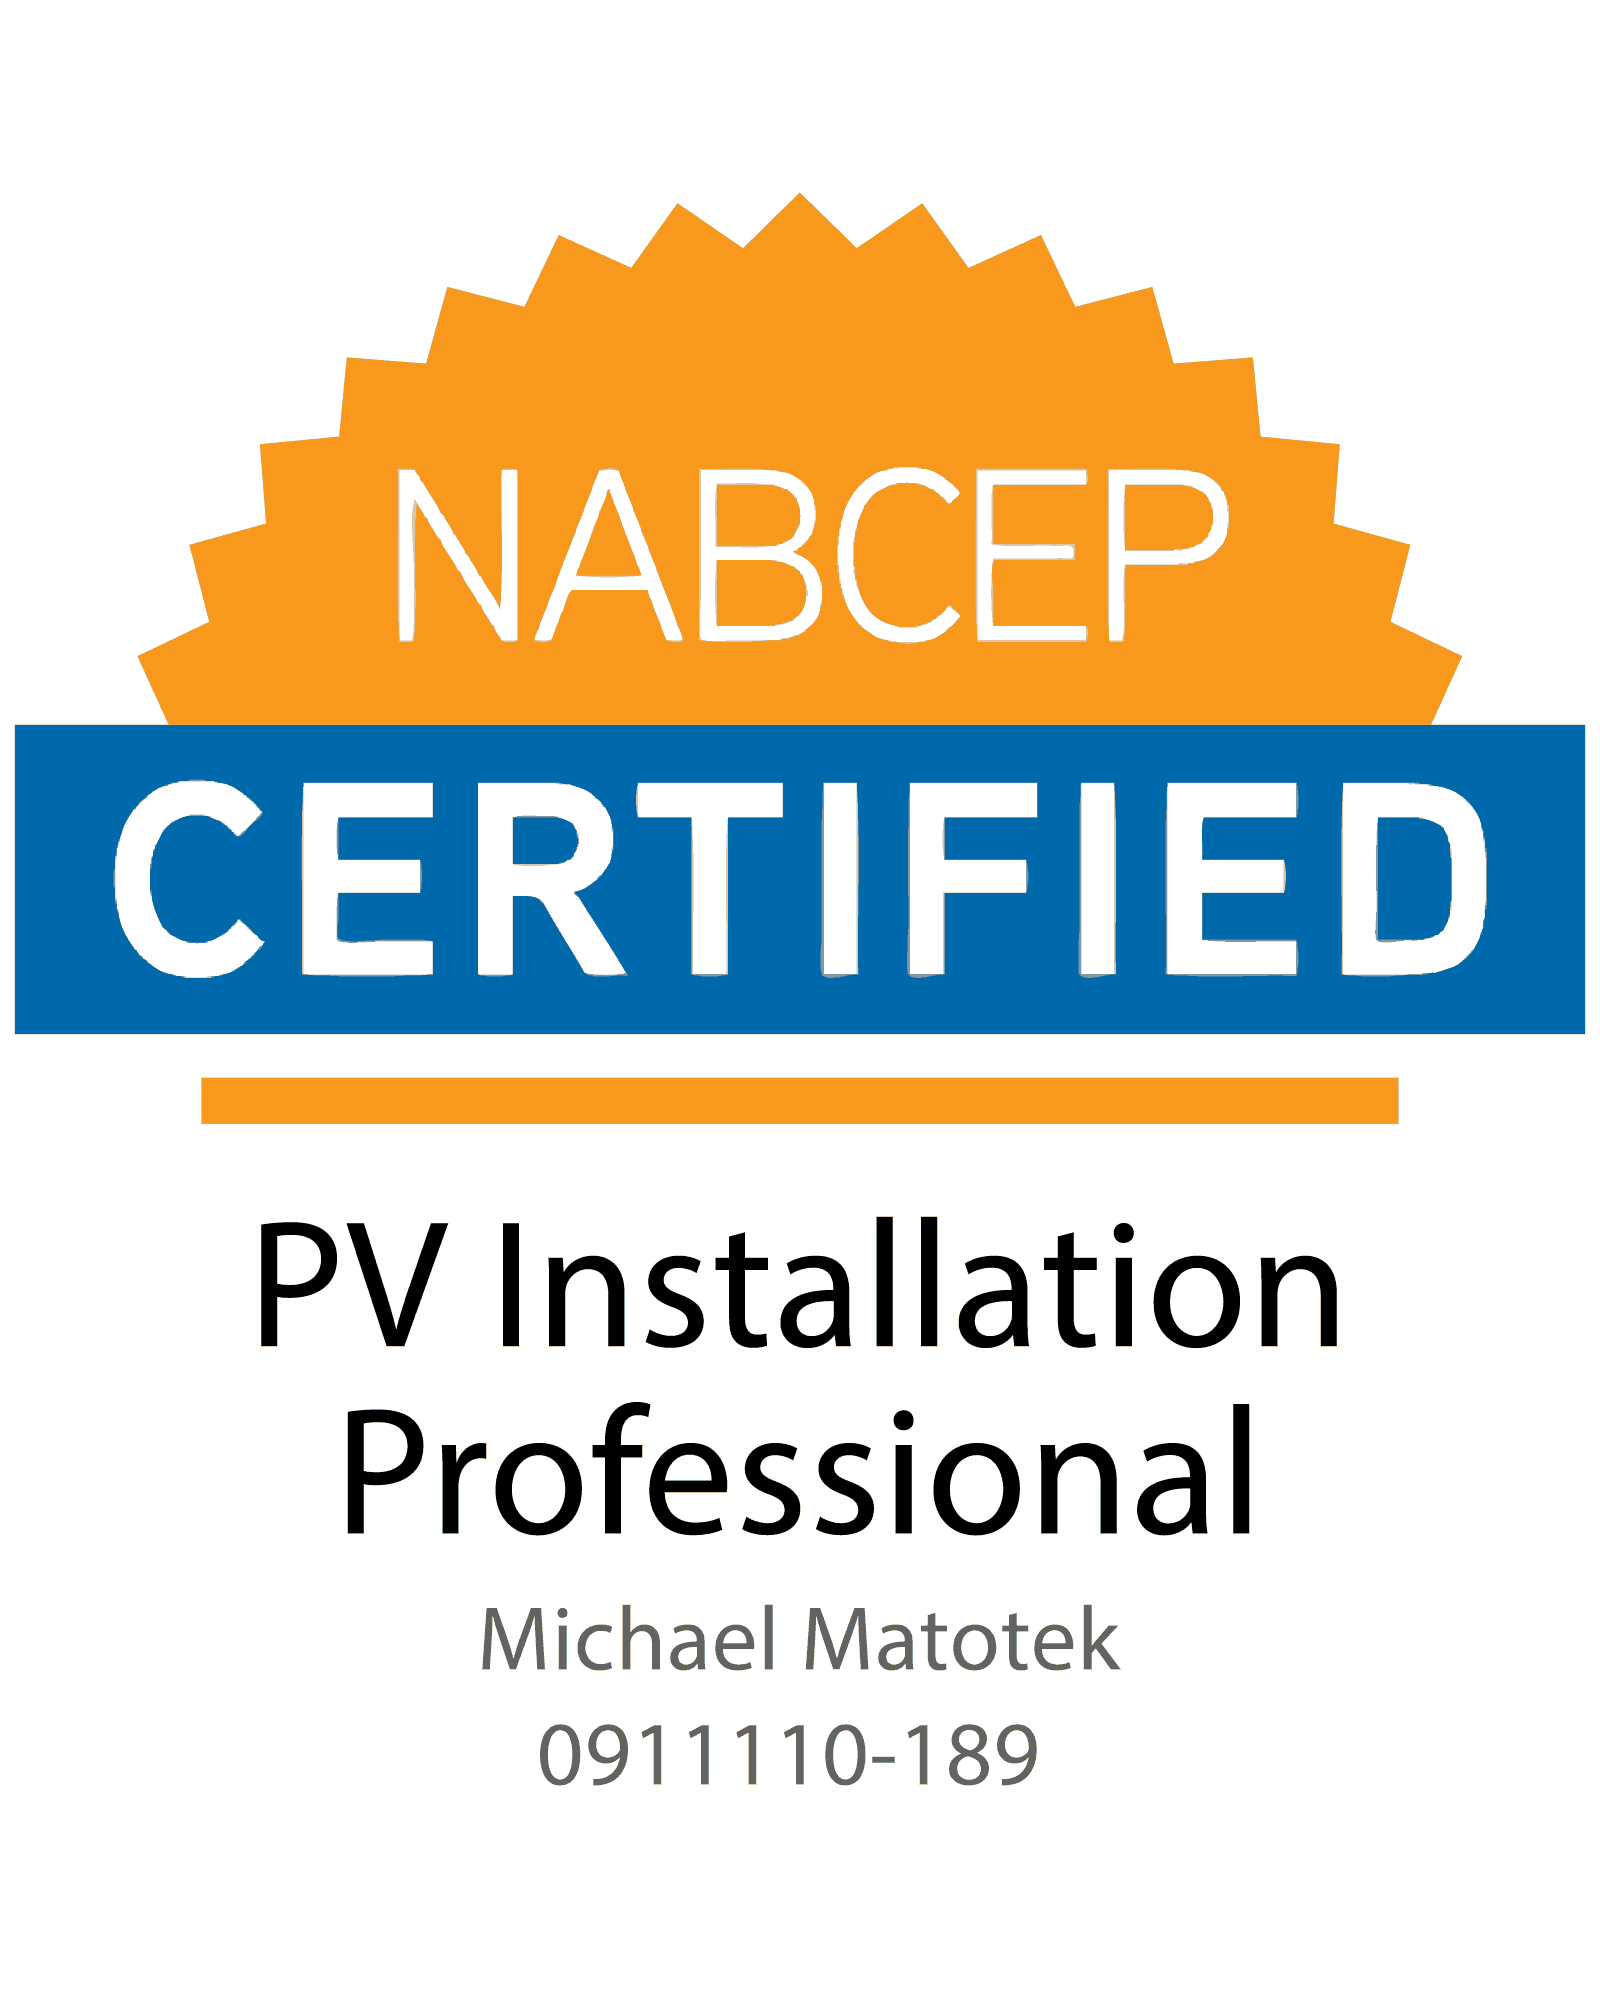 NABCEP Certified PV Installation Professional Michael Matotek 0911110-189